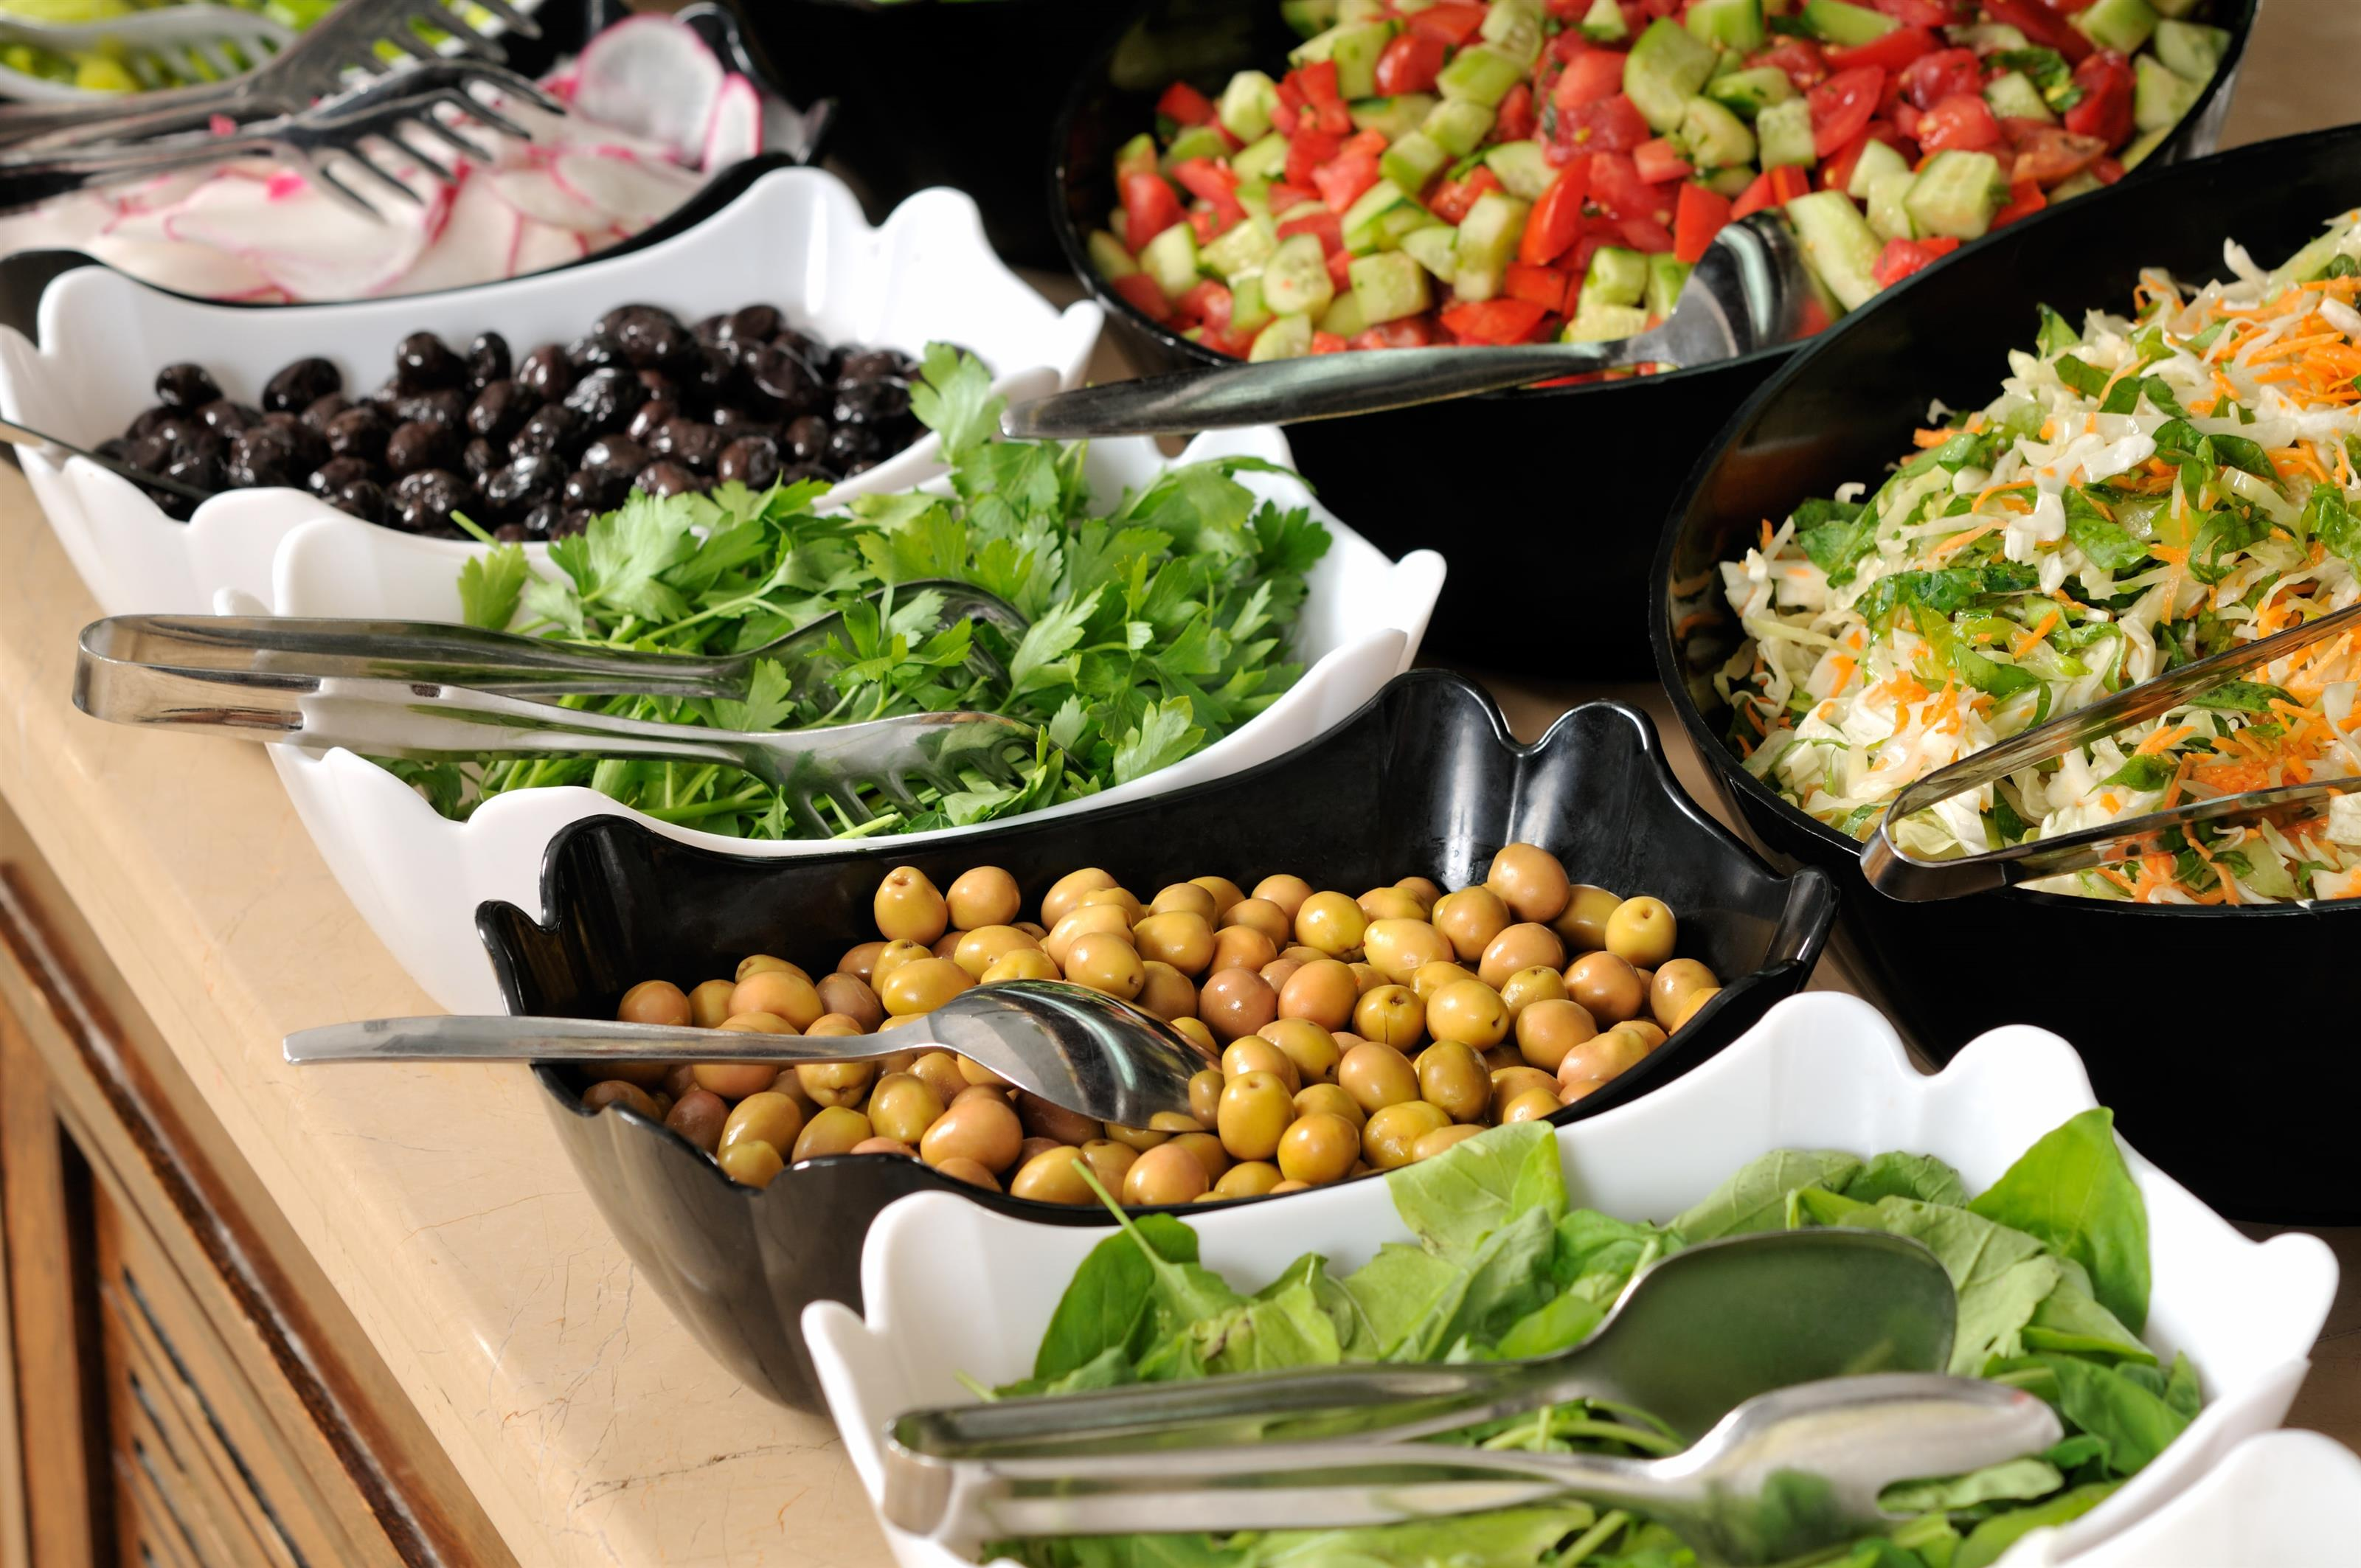 Salad bar display with assorted ingrediants